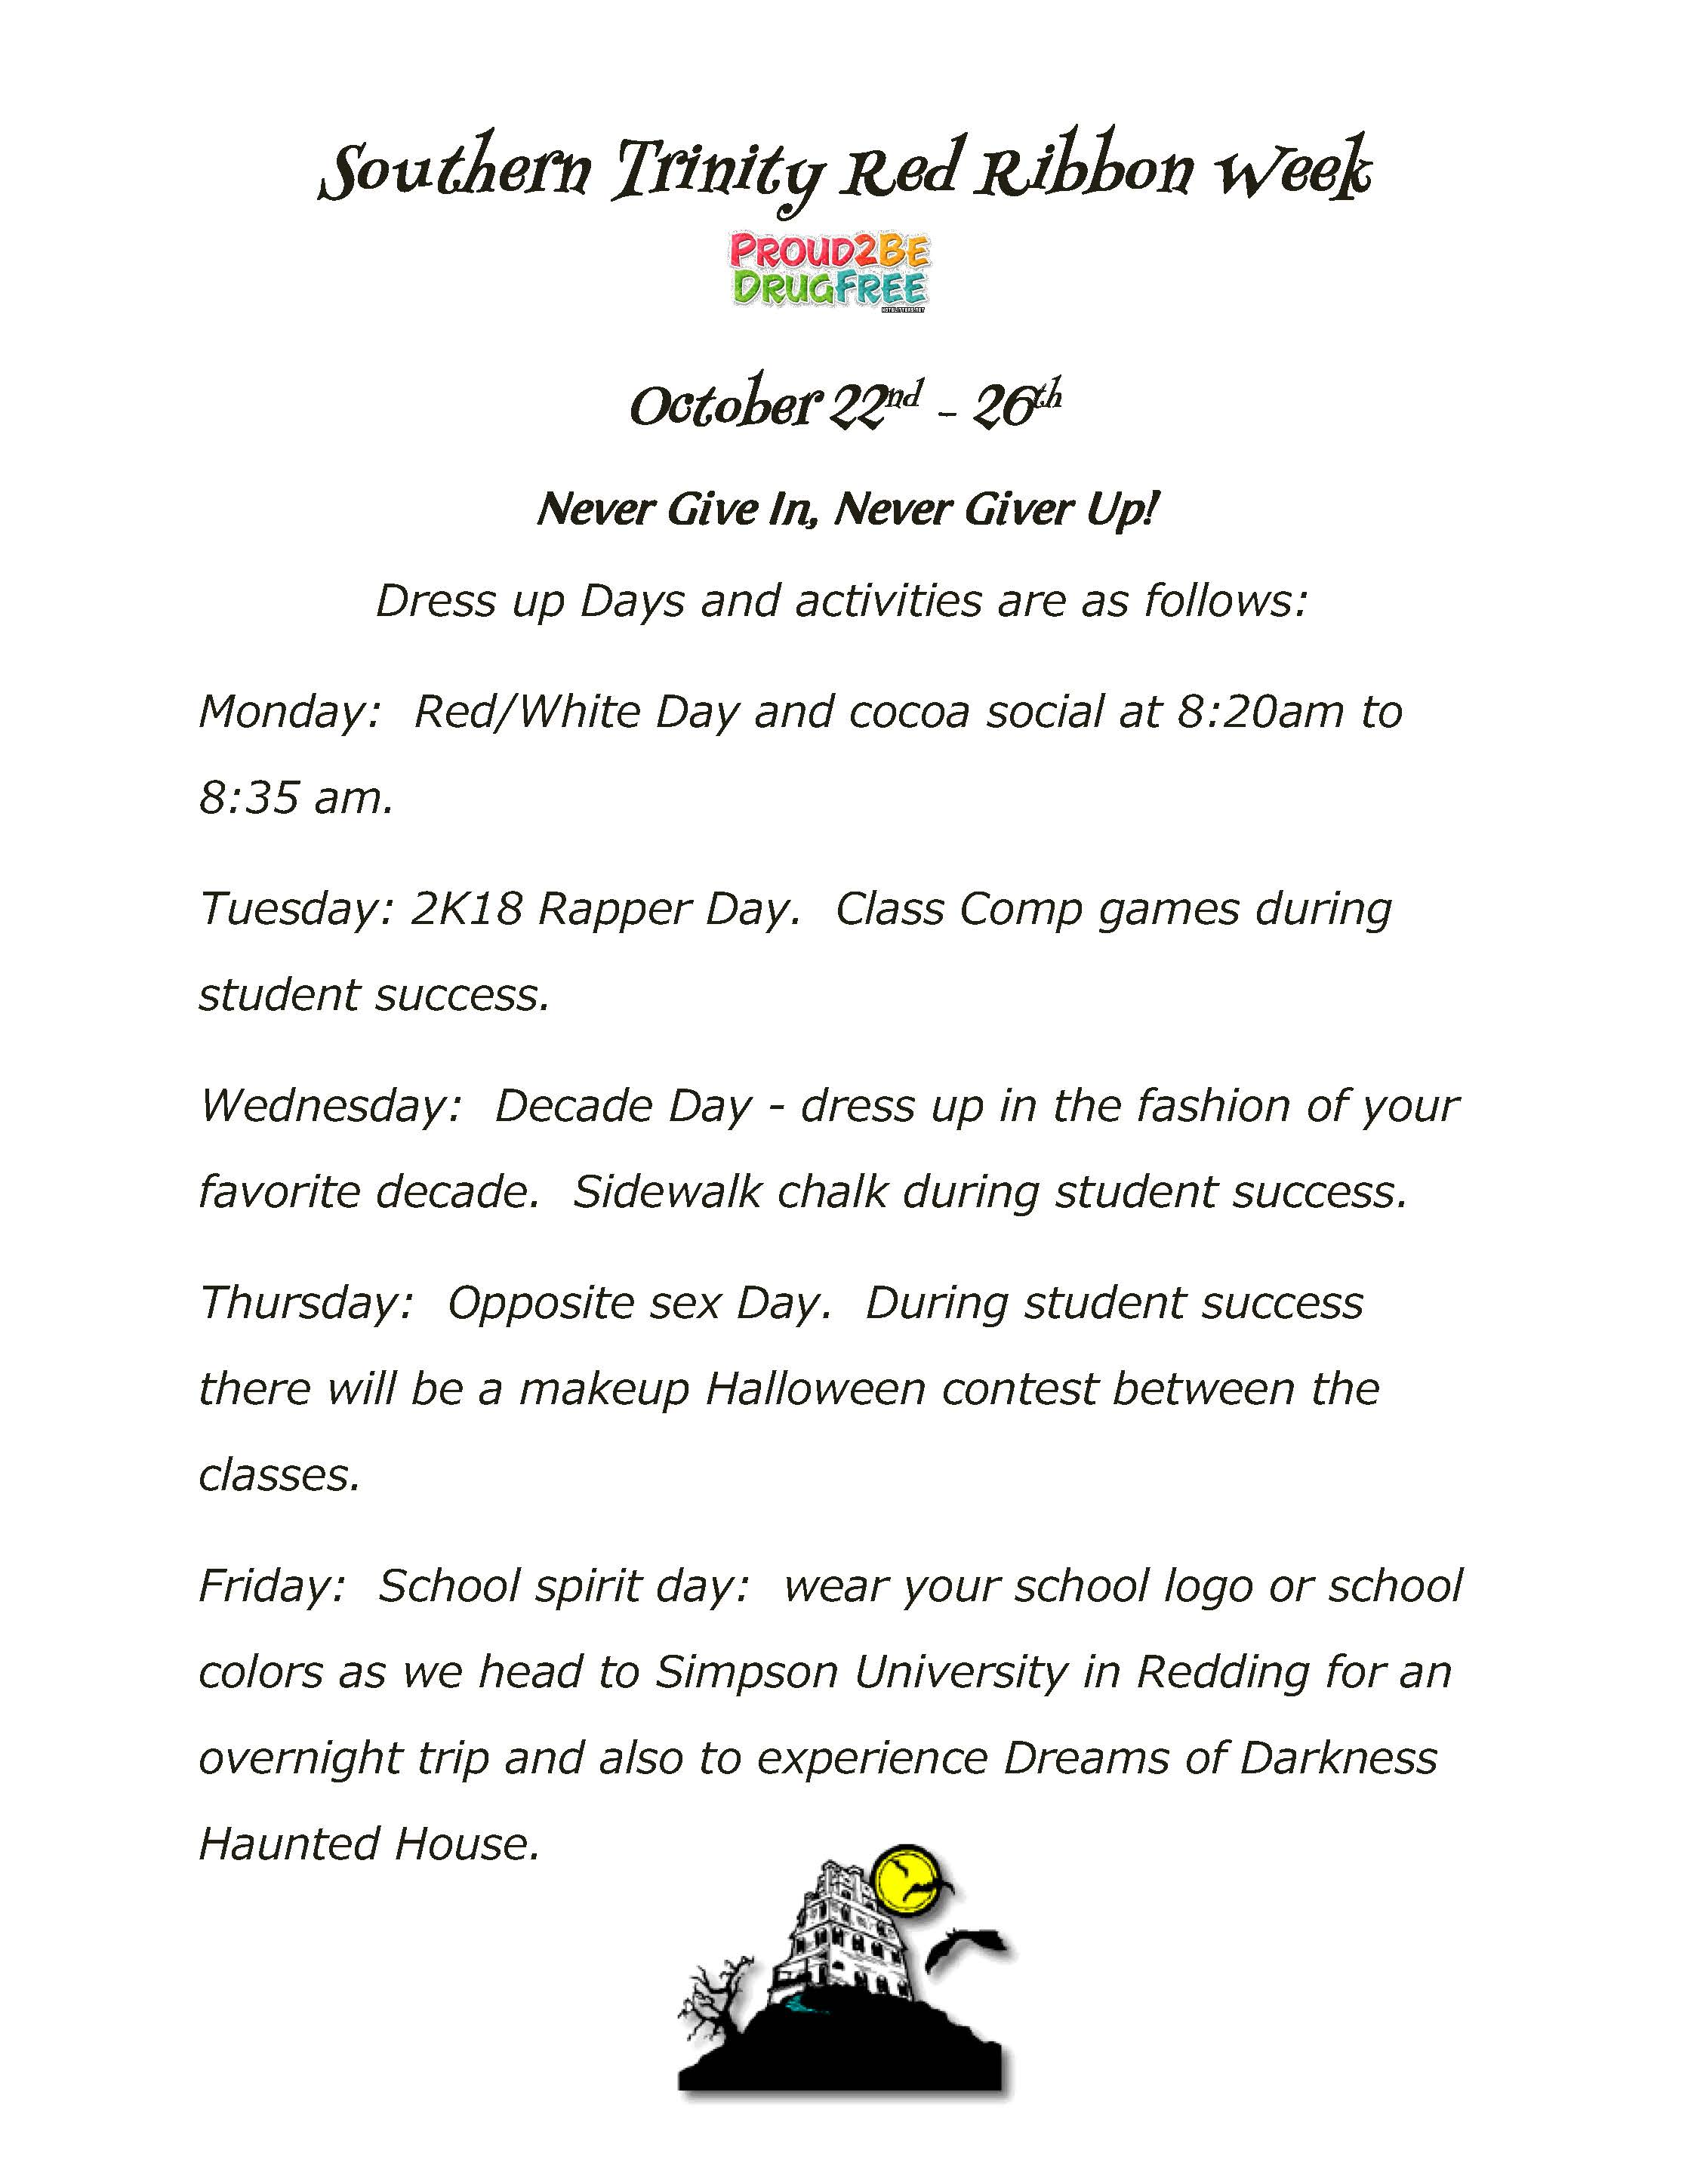 Southern_Trinity_Red_Ribbon_Week